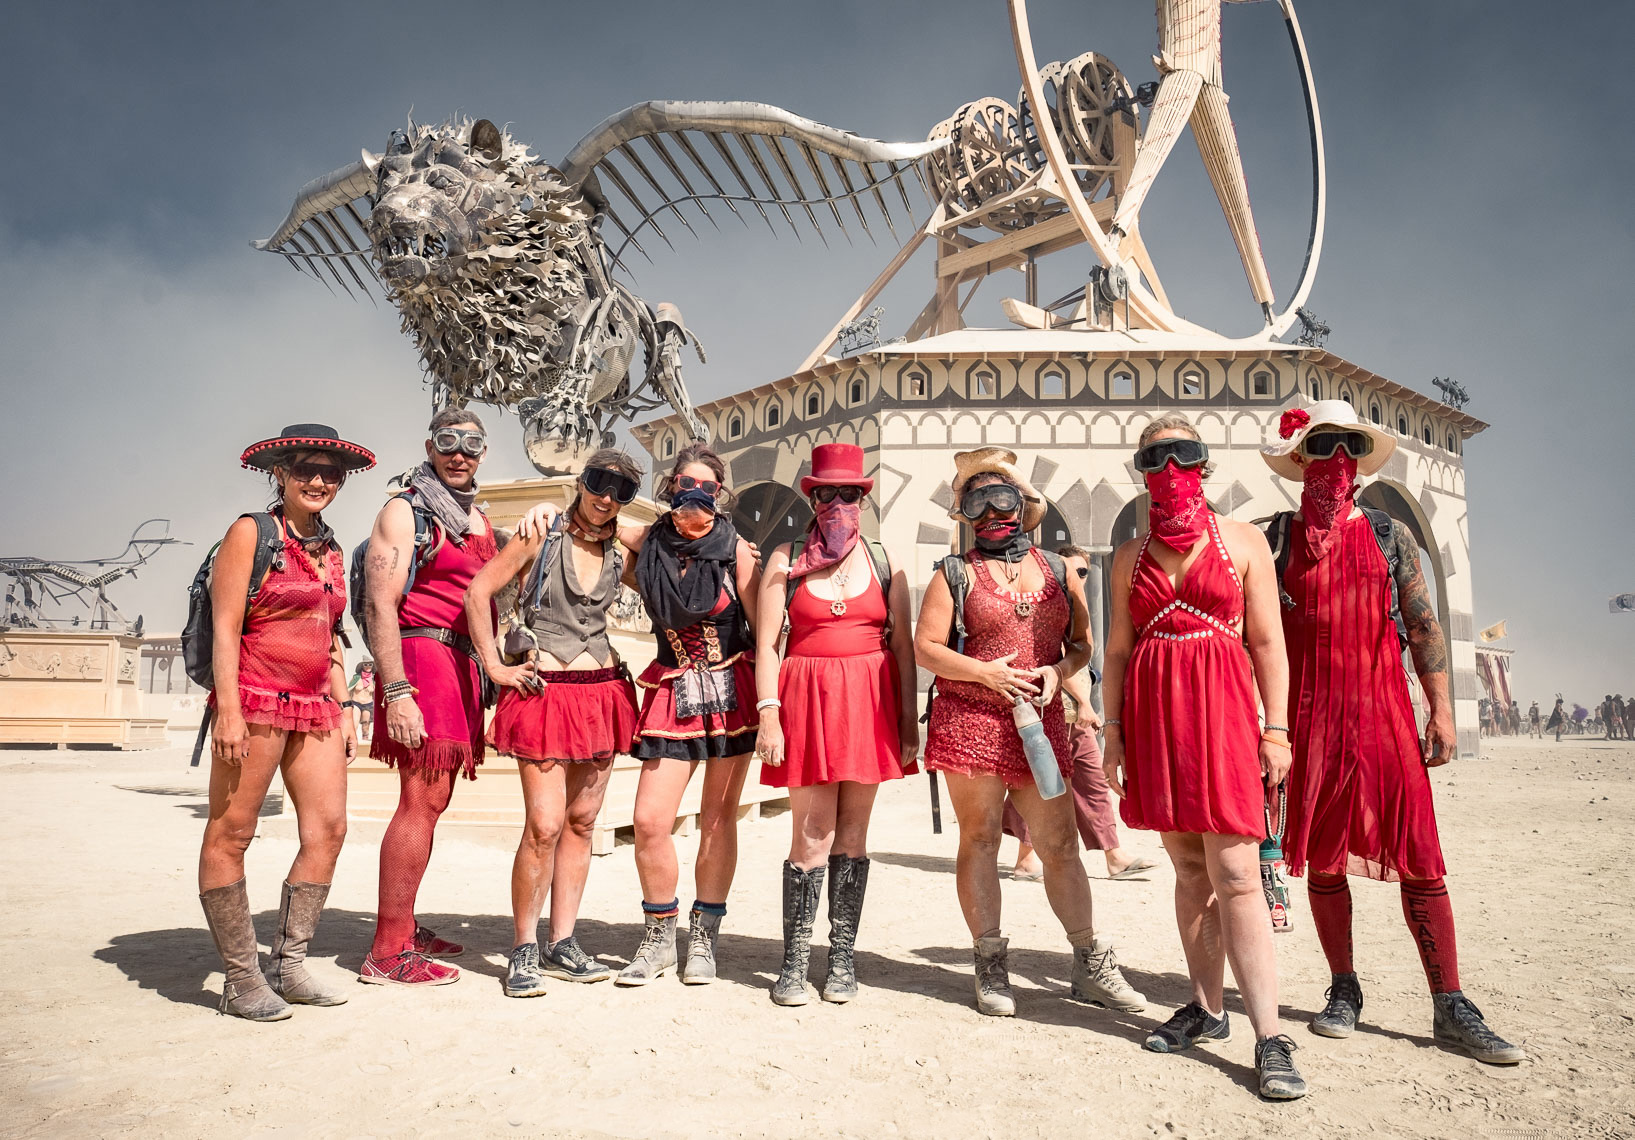 Red Gang at Burning Man